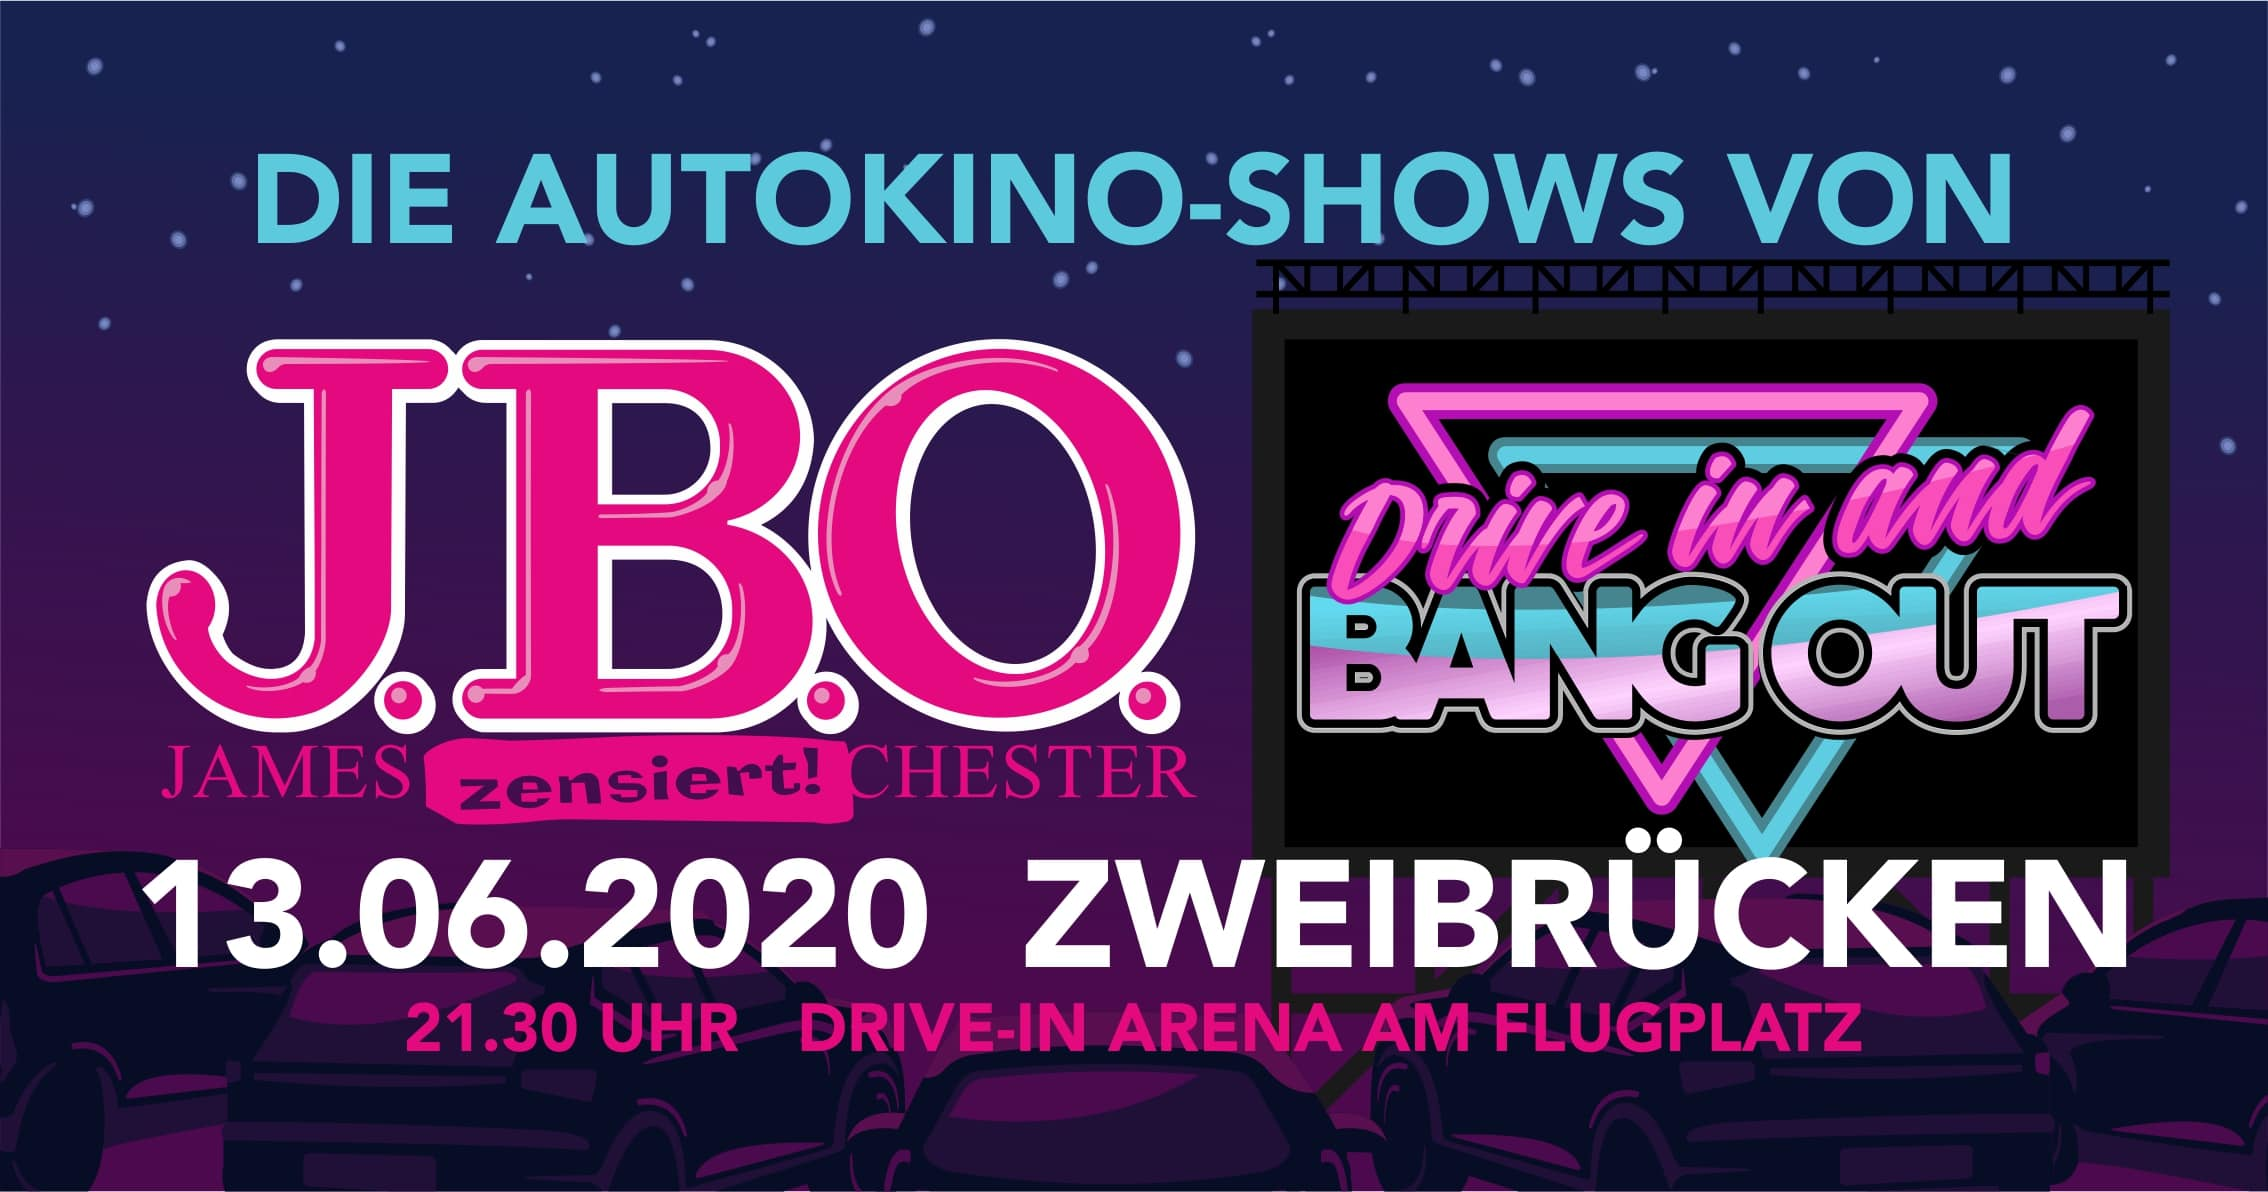 🚘 Drive in and Bang out: Samstag, 13. Juni 2020 - DriveIn-Arena, Zweibrücken